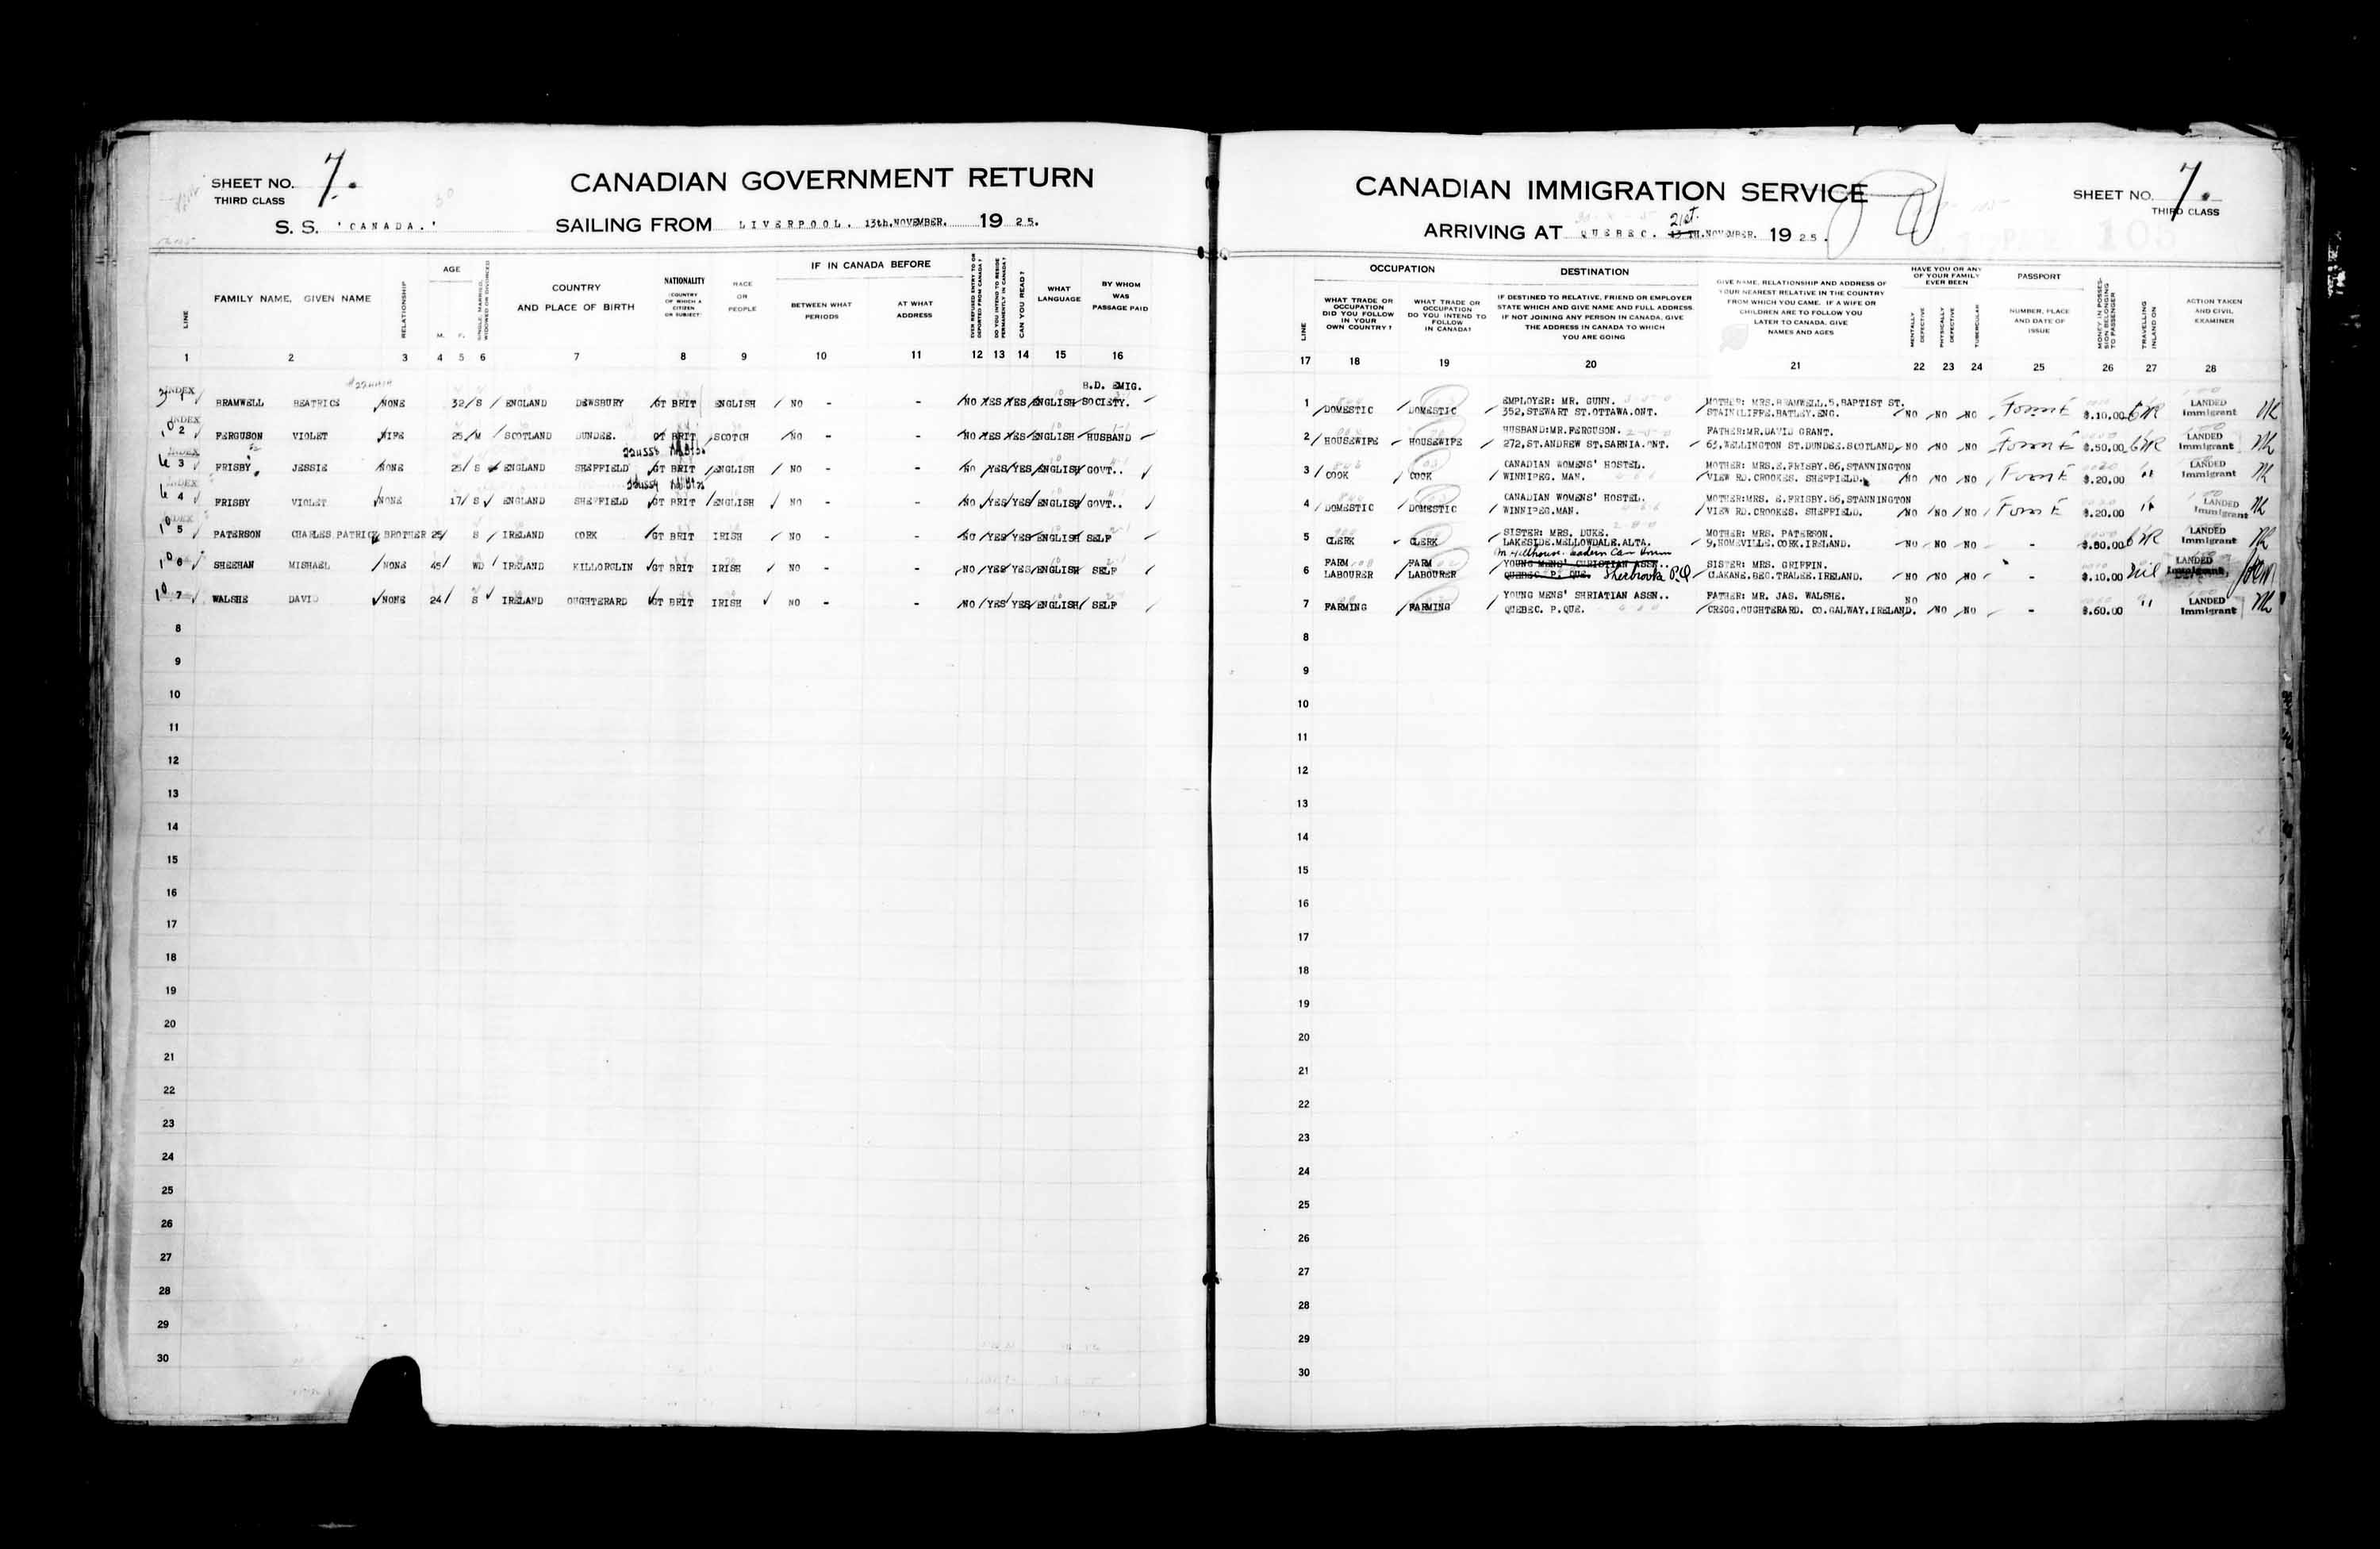 Title: Passenger Lists: Quebec City (1925-1935) - Mikan Number: 134839 - Microform: t-14721